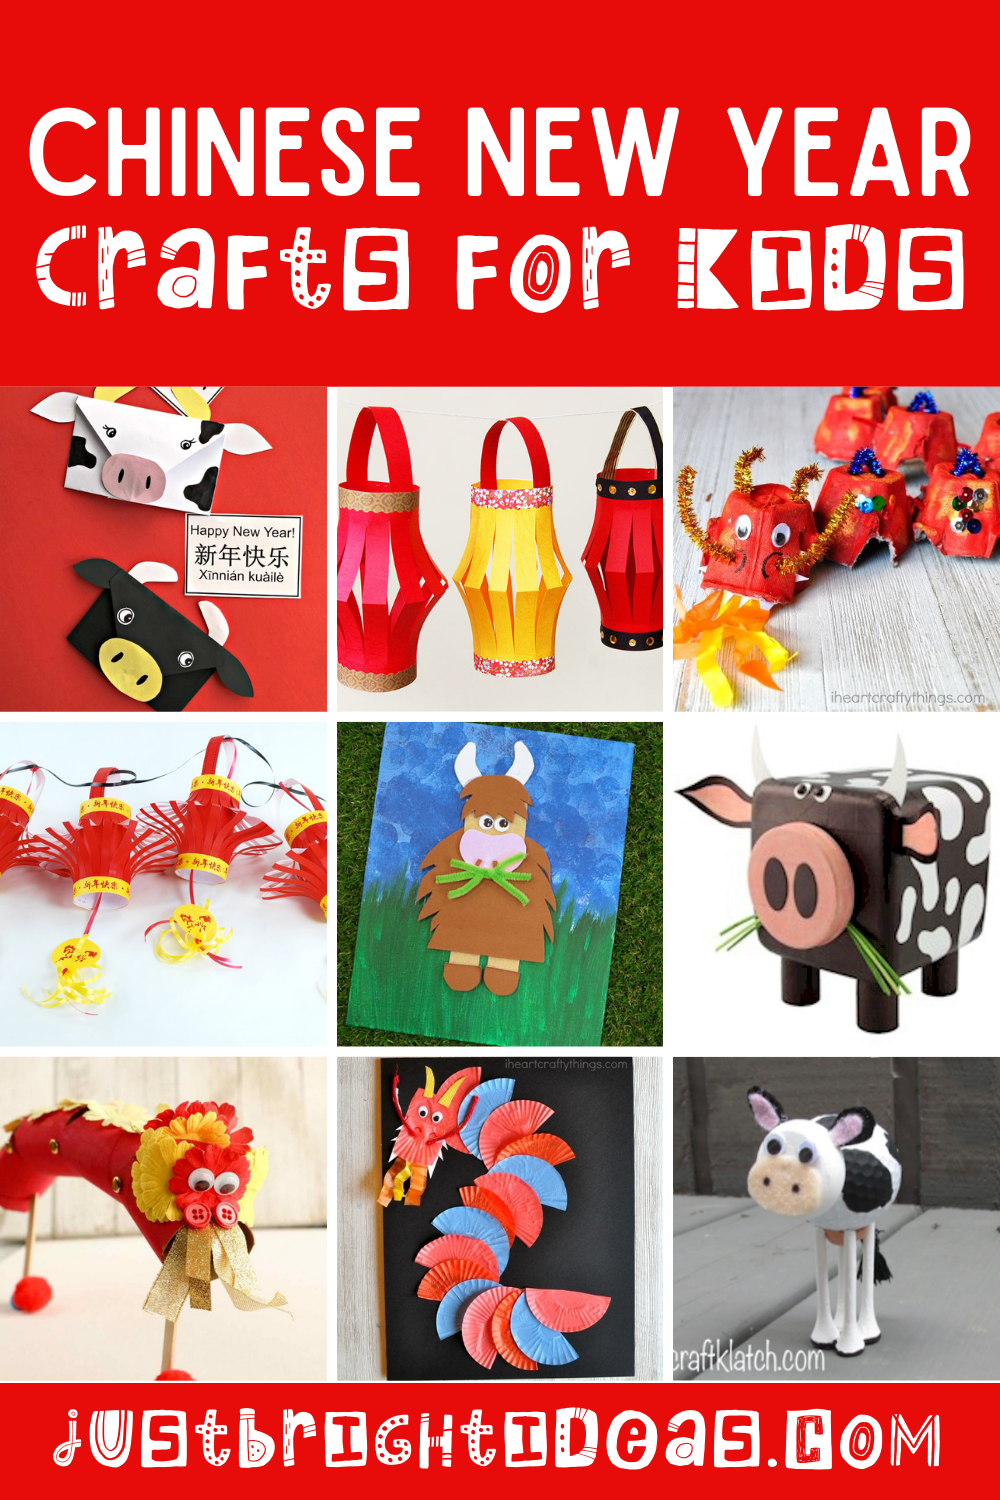 Did you know that 2021 is the Year of the Ox?  Check out these fun Chinese New Year craft ideas for kids of all ages. includes ox, dragon and paper lantern crafts! #chinesenewyear #craftsforkids